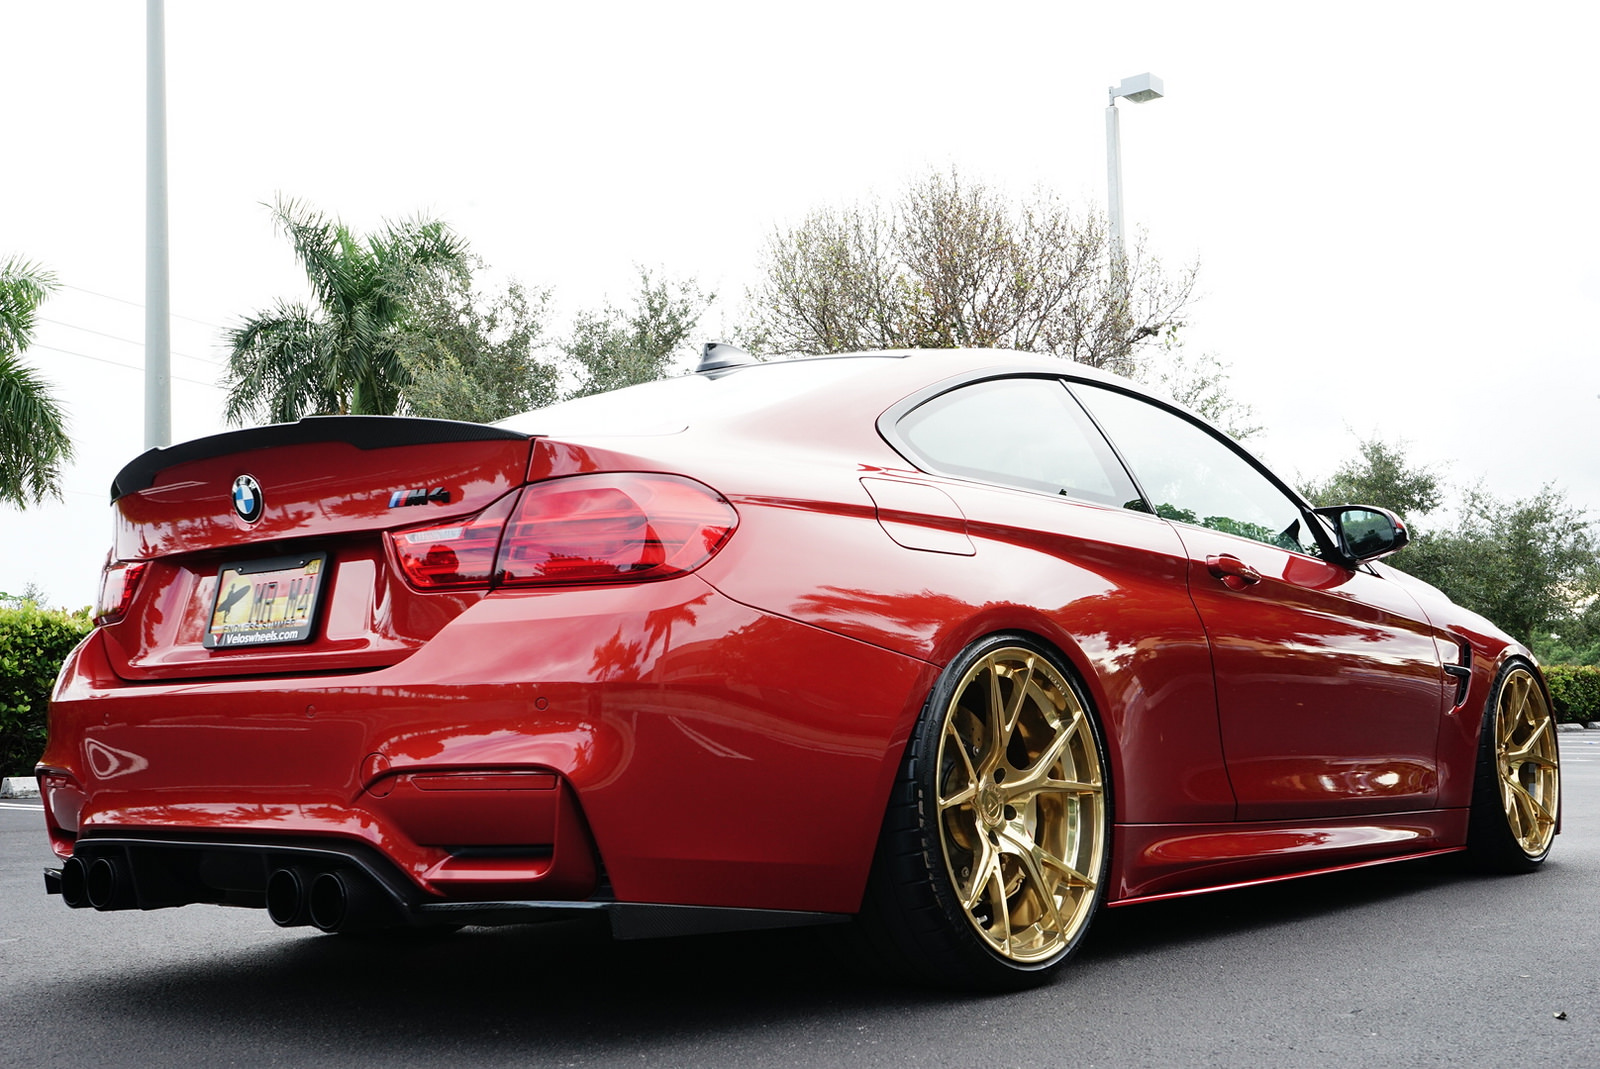 Sakhir Orange Bmw F82 M4 On Velos S3 1 Pc Forged Wheels